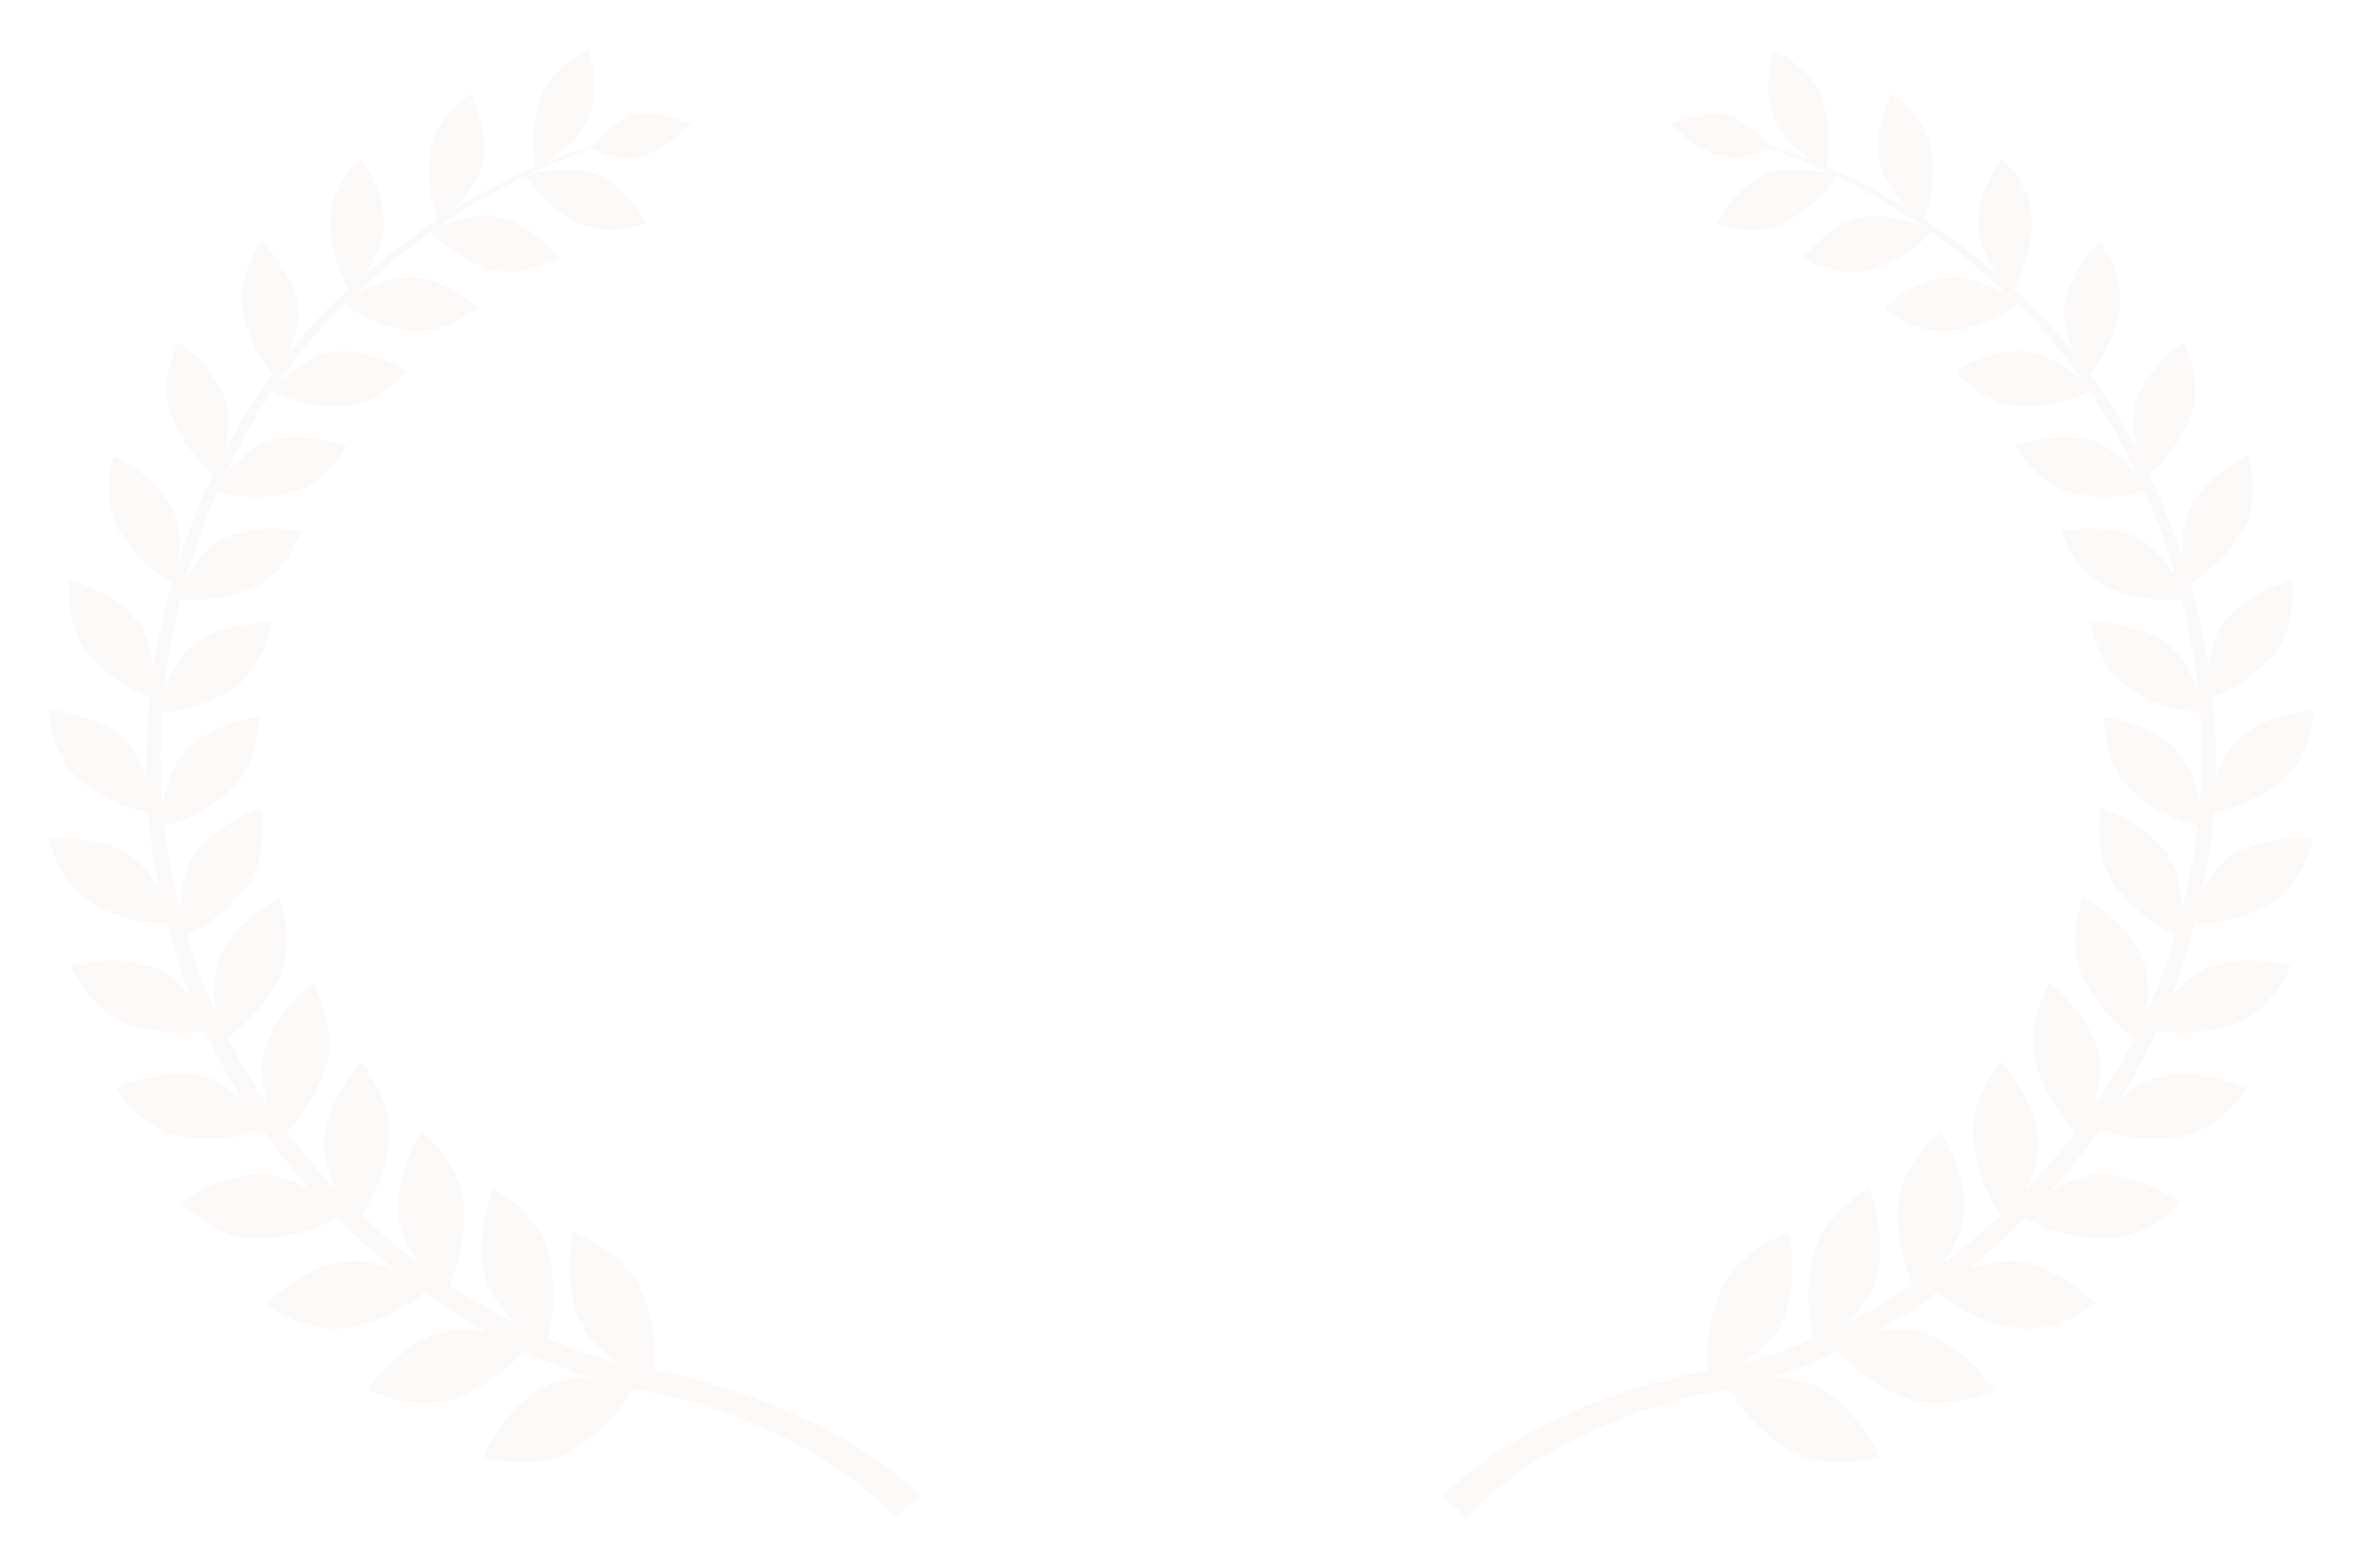 OFFICIALSELECTION-CindependentFilmFestival-2018.png